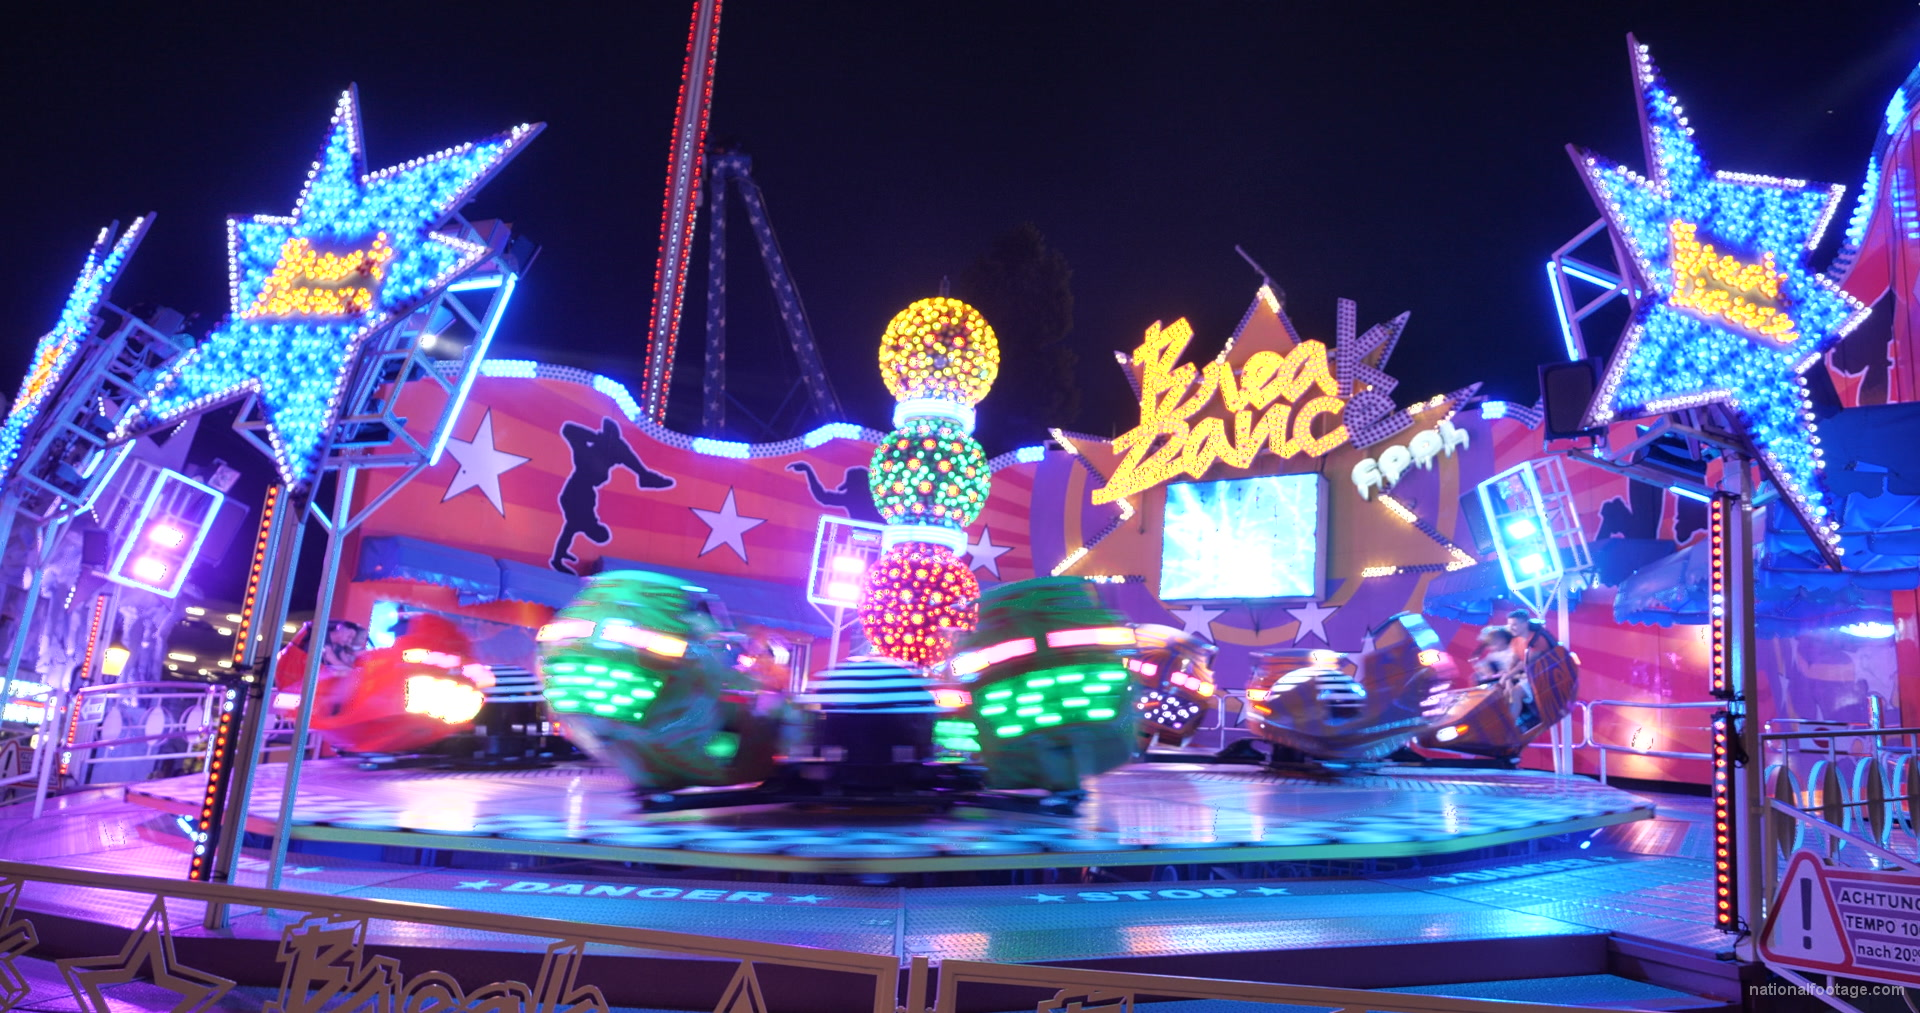 vj video background Energetic-Break-Dance-Attraction-In-Prater-Vienna-Austria_003